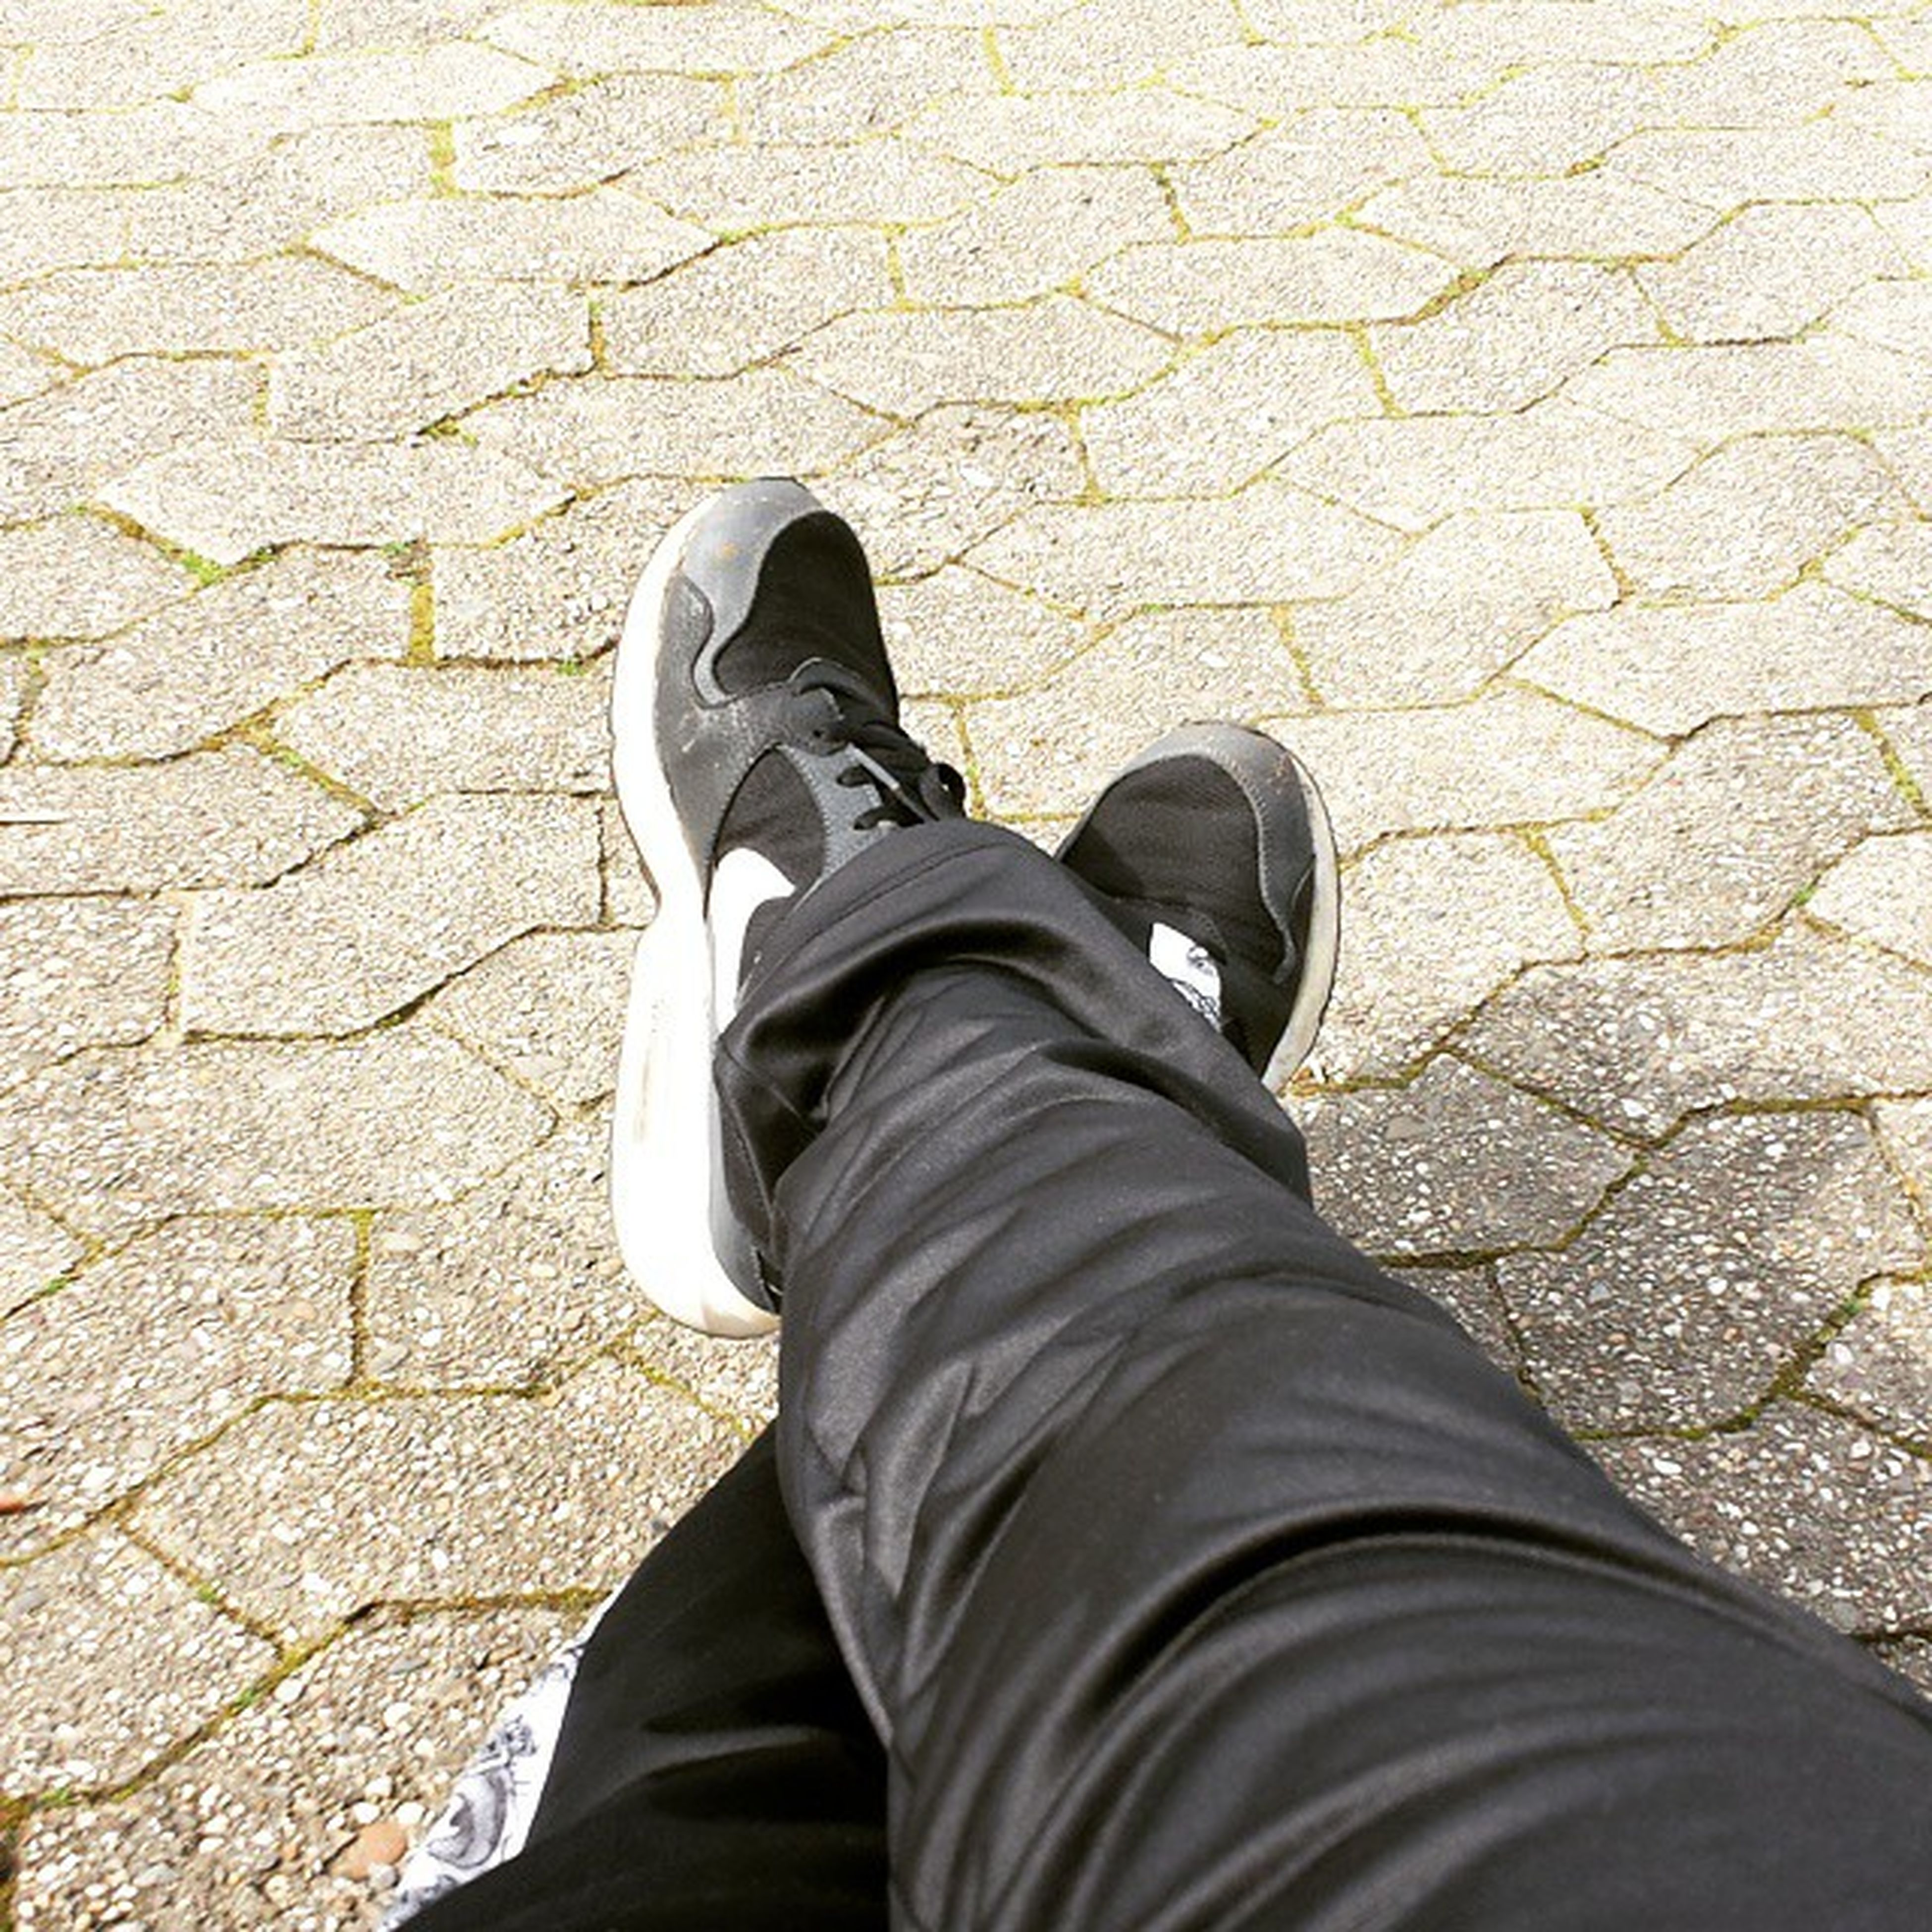 low section, person, personal perspective, shoe, standing, lifestyles, men, jeans, street, footwear, high angle view, leisure activity, casual clothing, human foot, unrecognizable person, day, outdoors